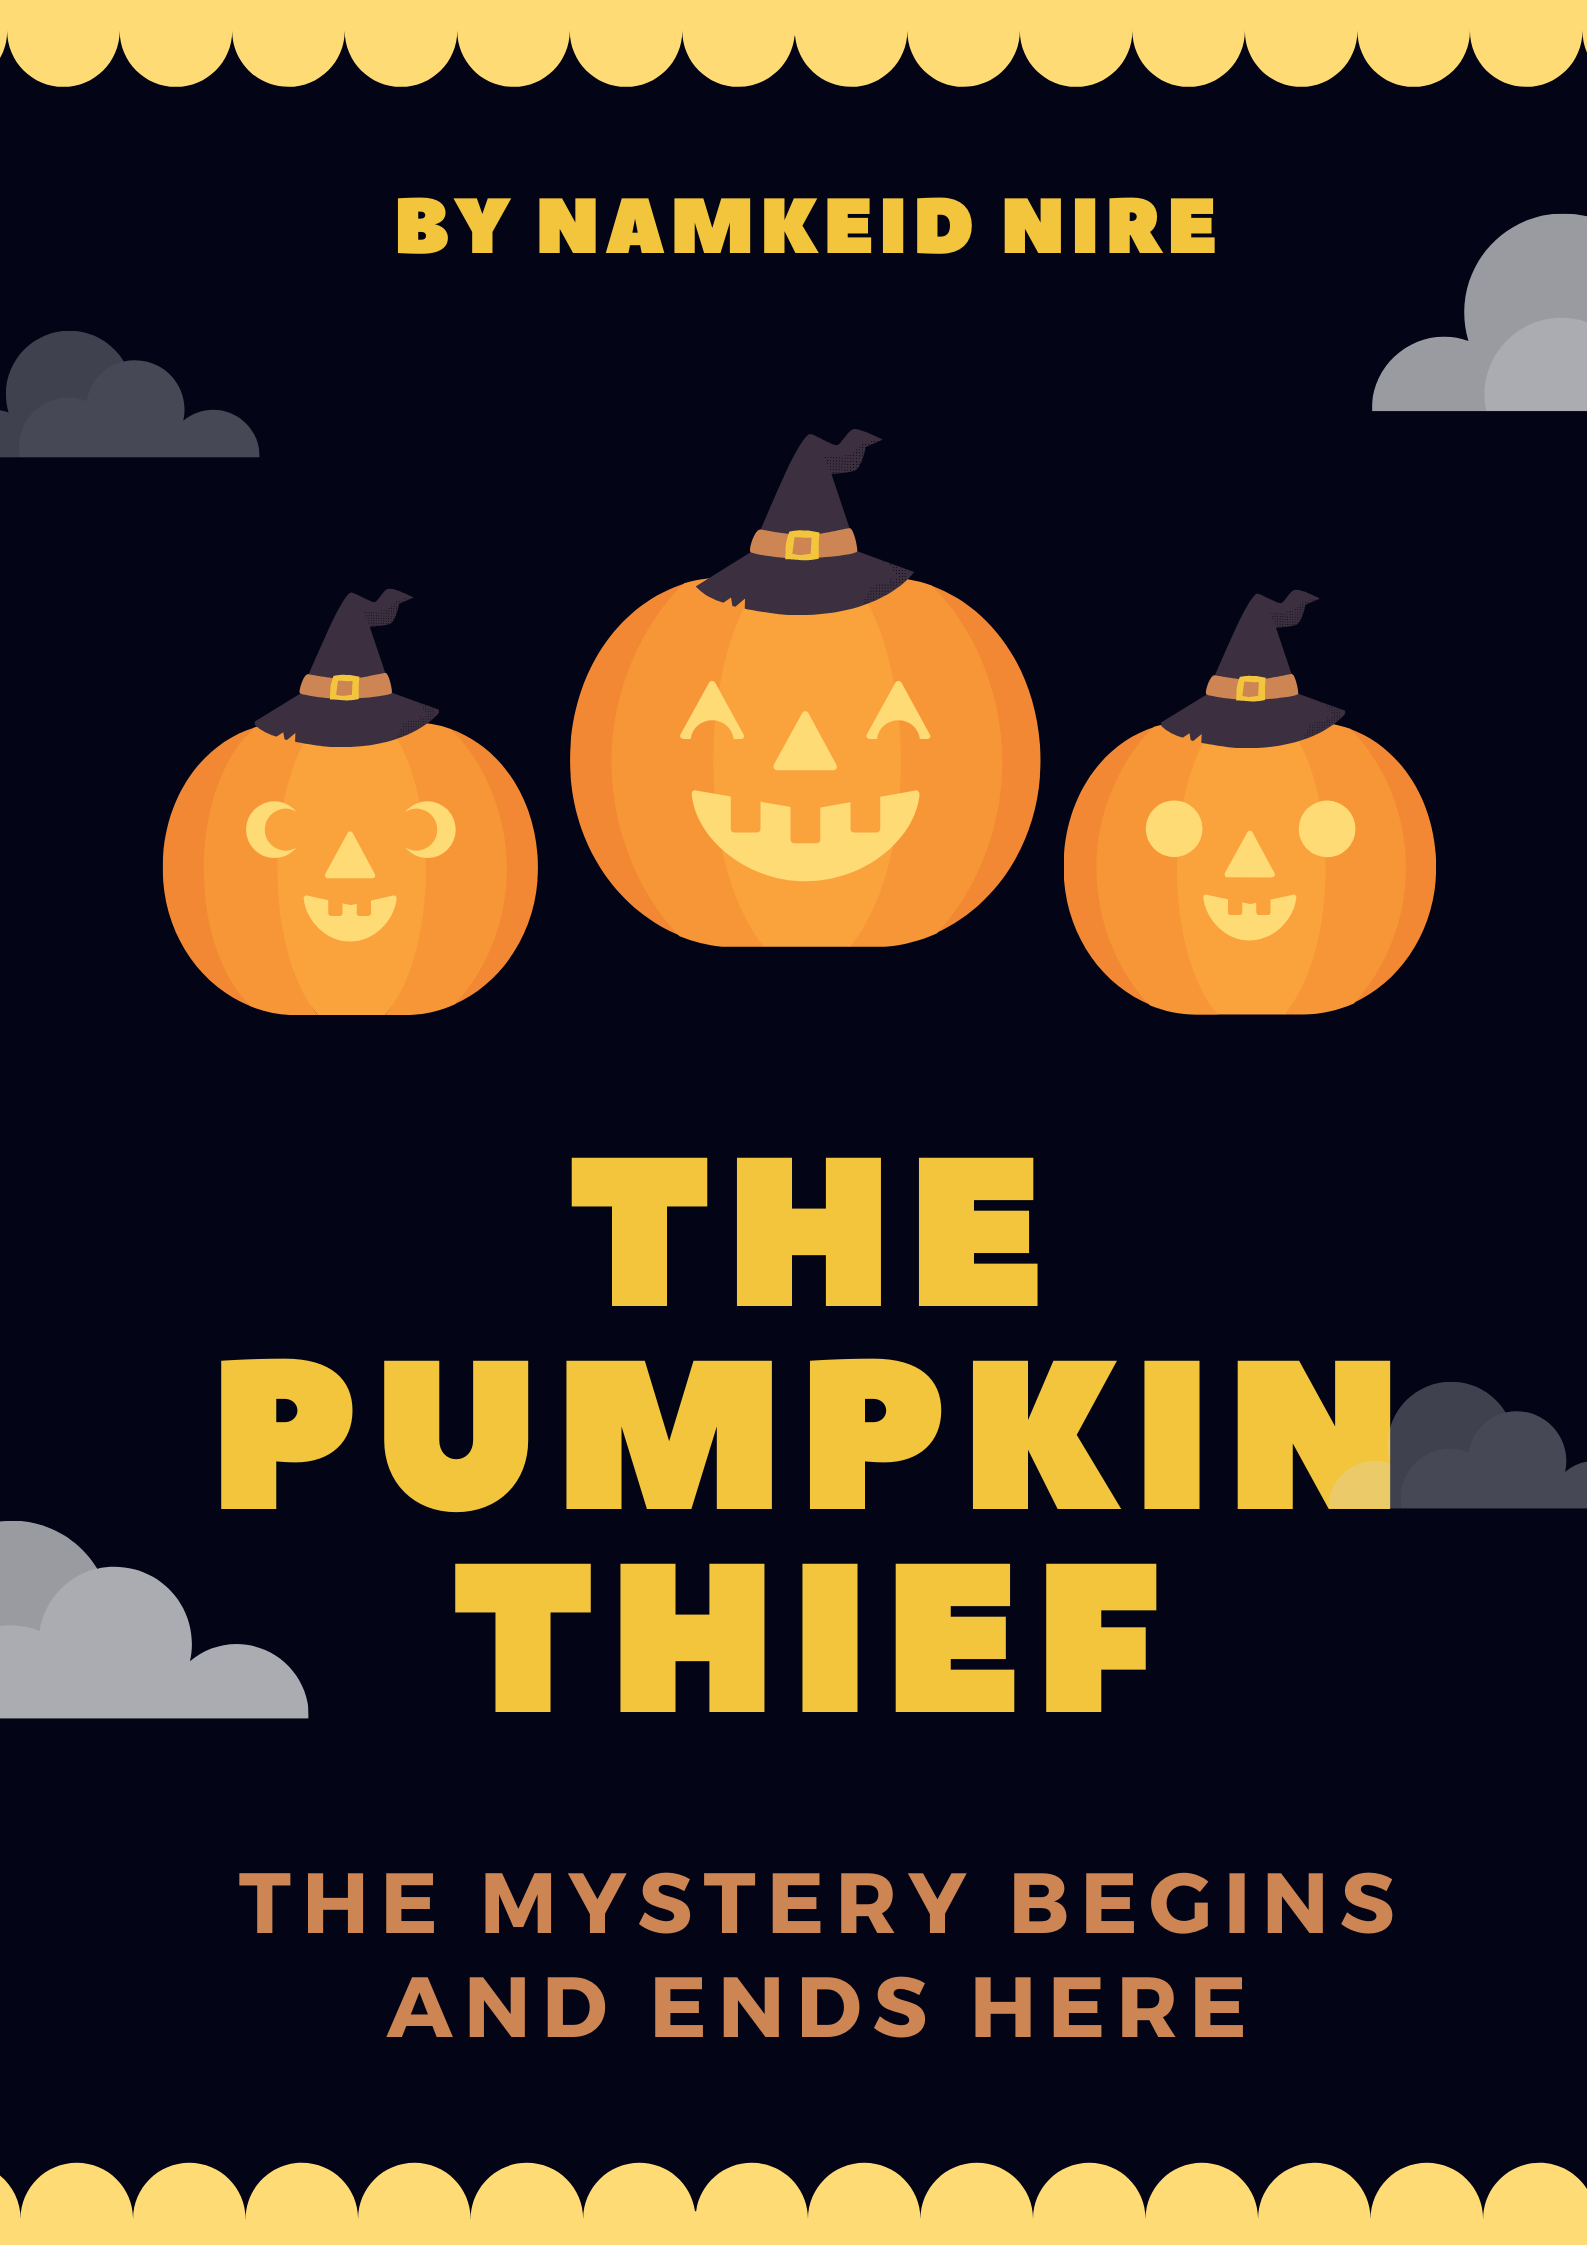 The cover for the detective story for the The Case of the Pumpkin thief. Black background with bright orange pumpkins.